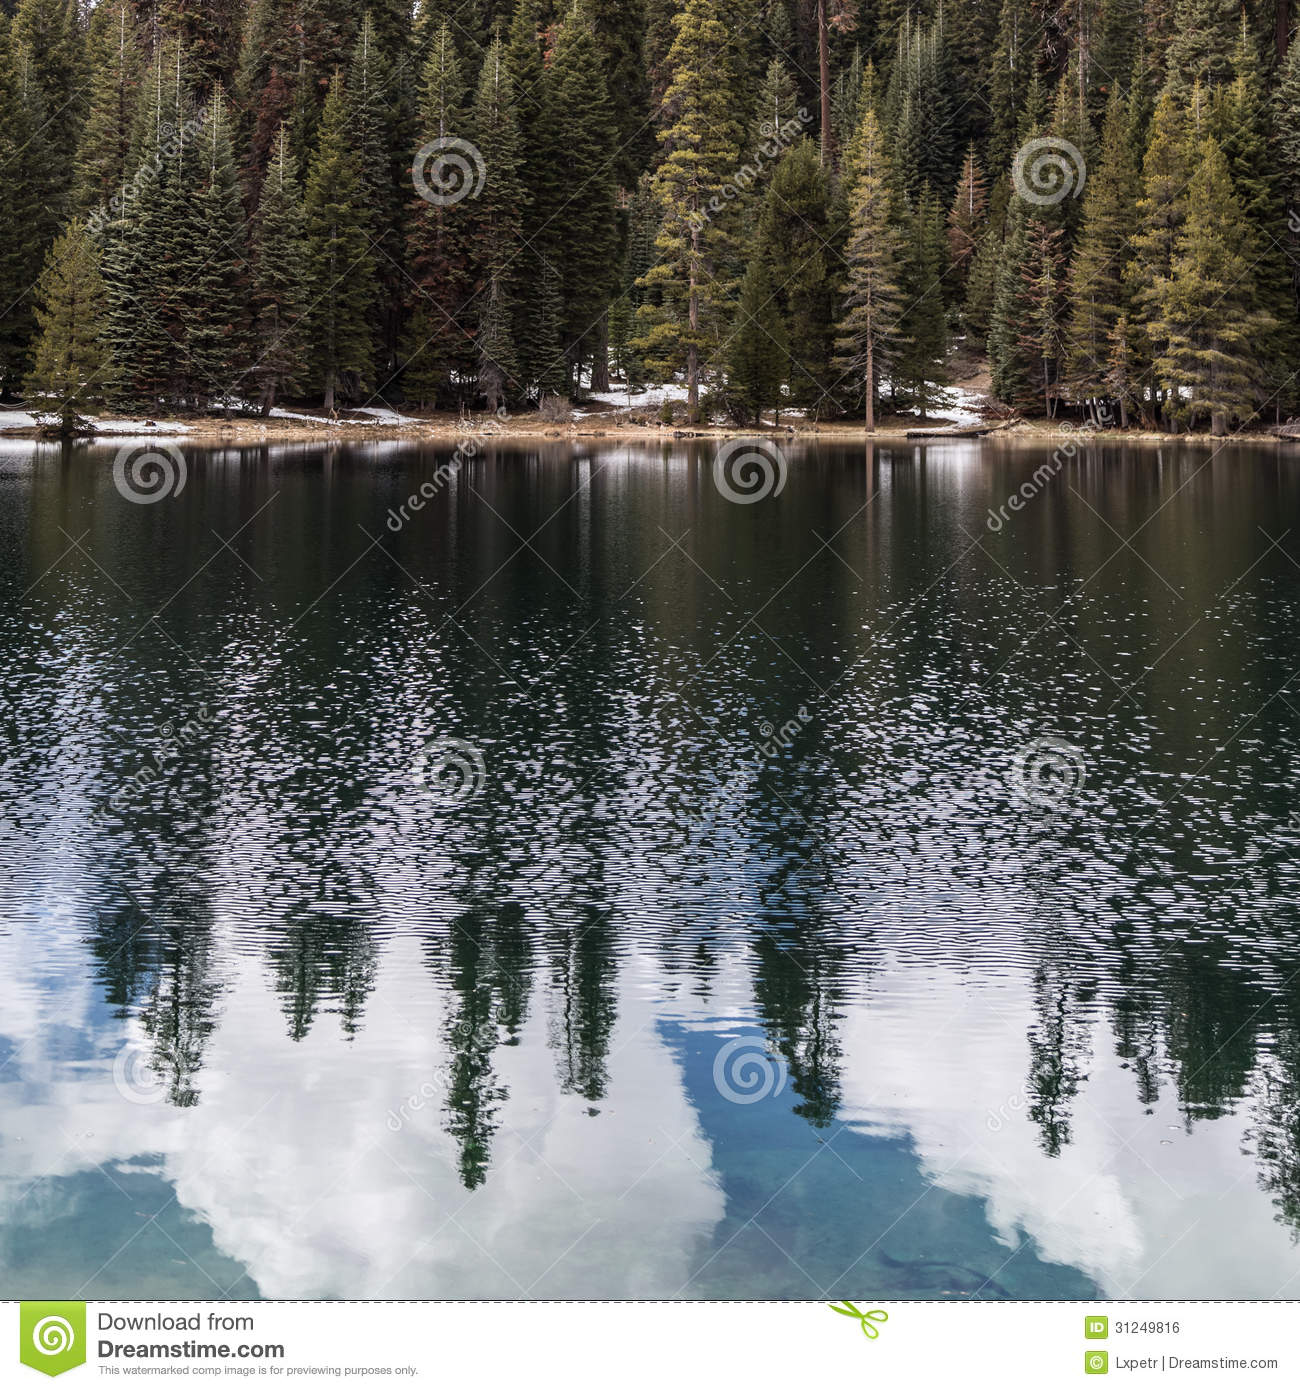 Tulare (CA) United States  city photos gallery : of Sequoia National Park in Tulare County, California, United States ...